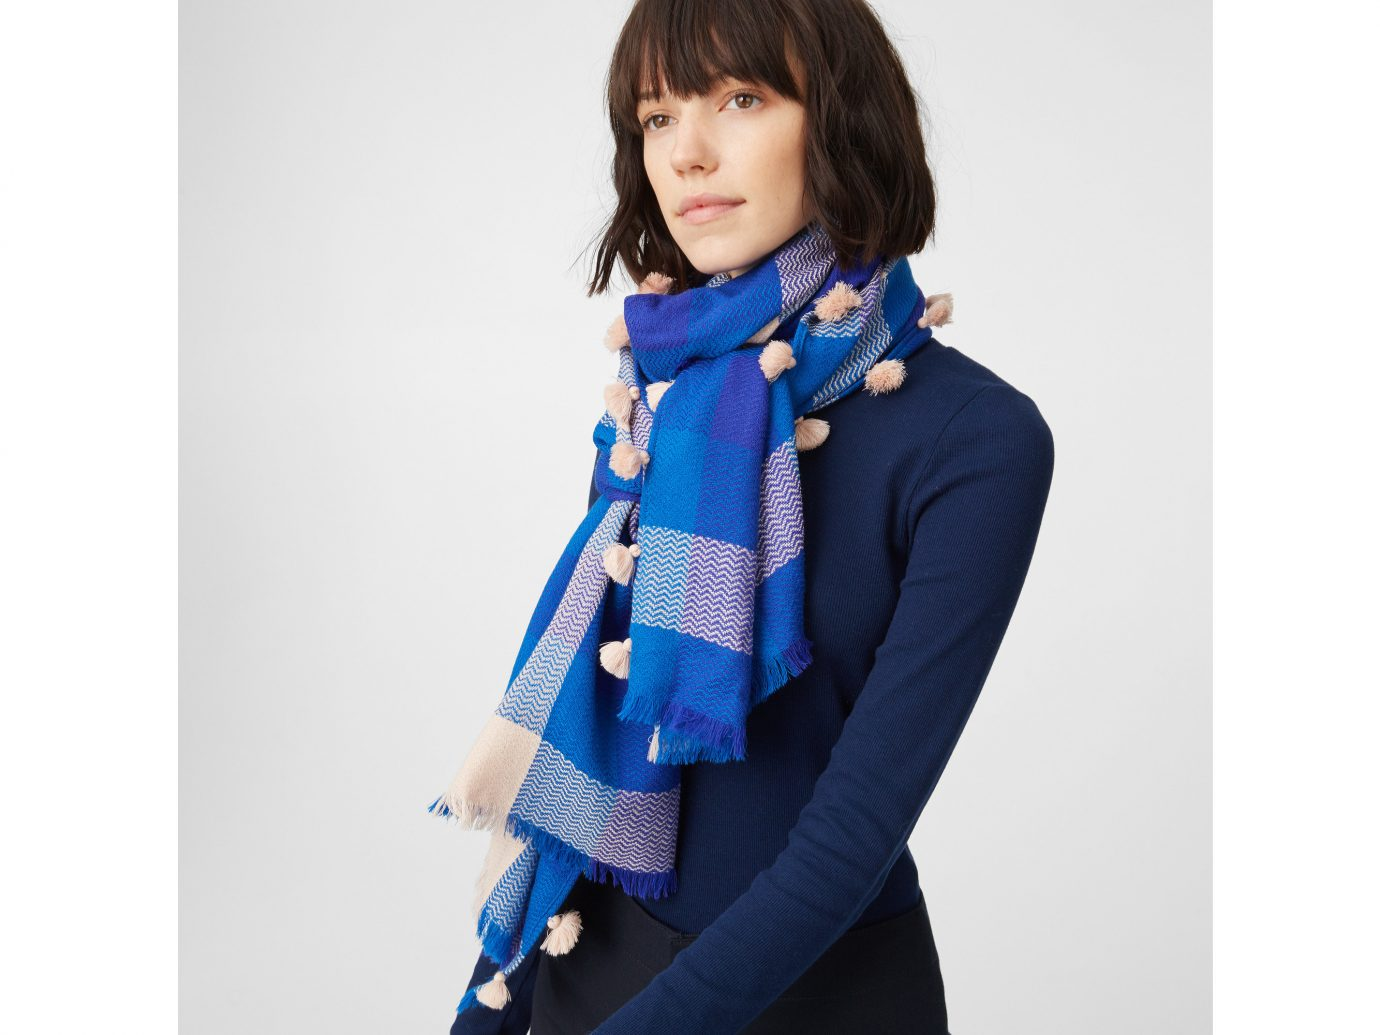 Travel Shop person clothing wearing scarf shoulder posing suit electric blue blue dressed stole pattern product neck coat